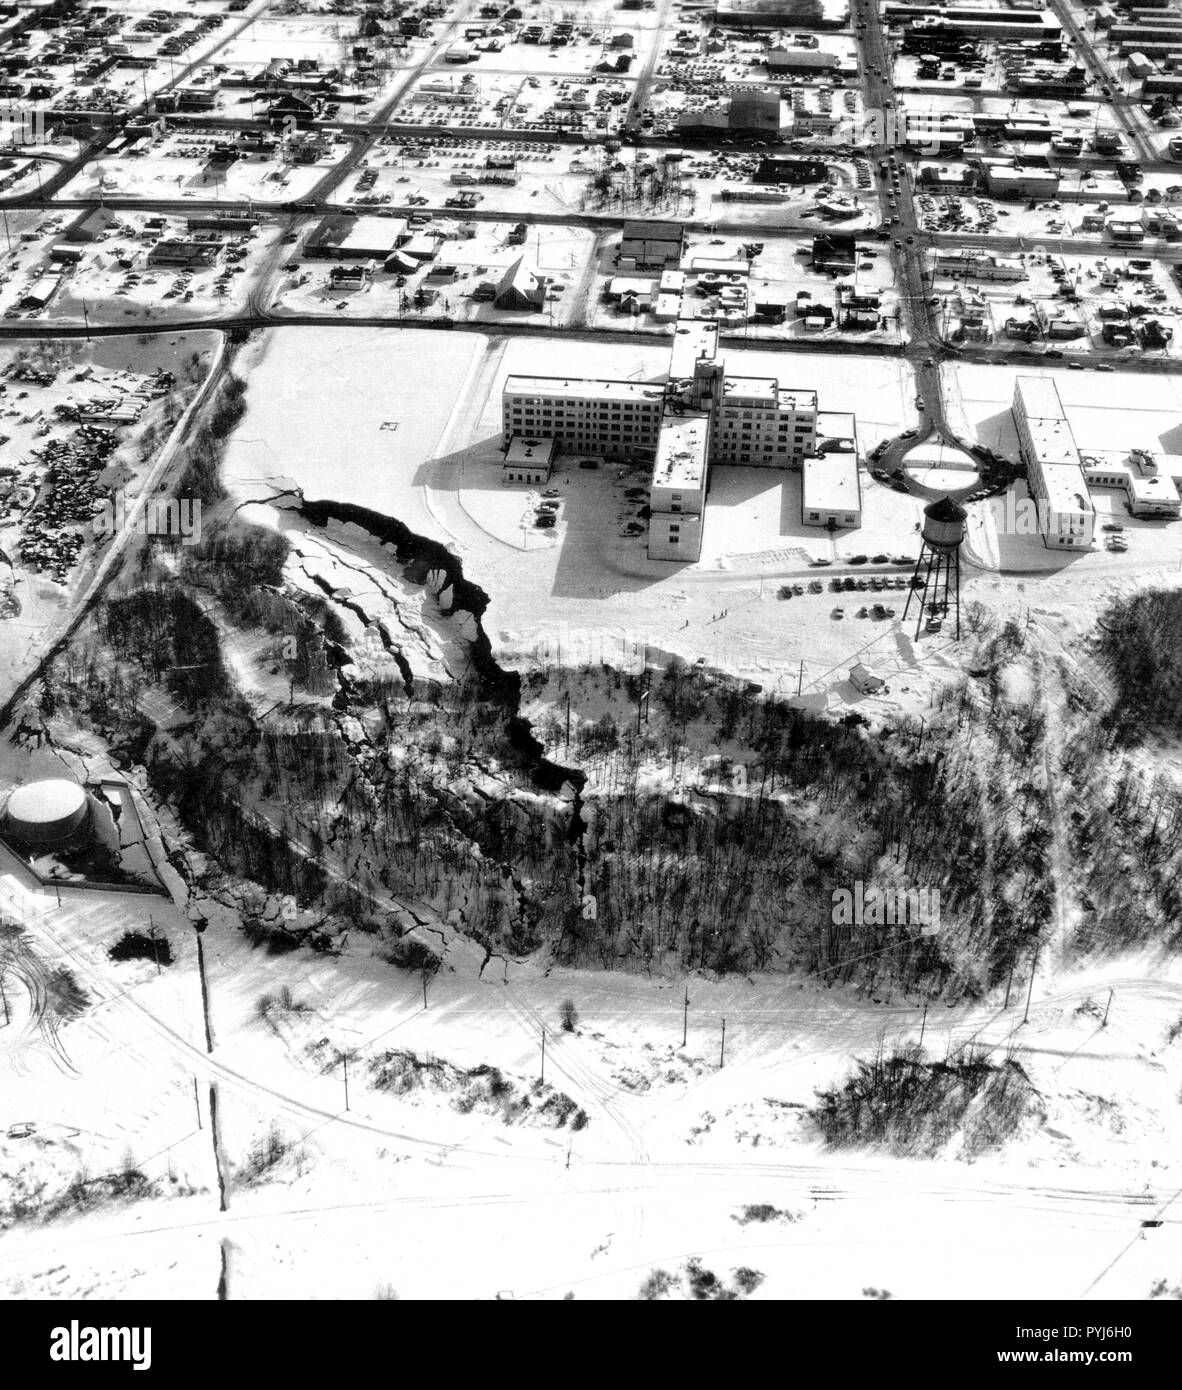 March 27, 1964 Alaska earthquake. The landslide occurred next to this hospital in Anchorage which is showing graben and pressure ridges. Stock Photo